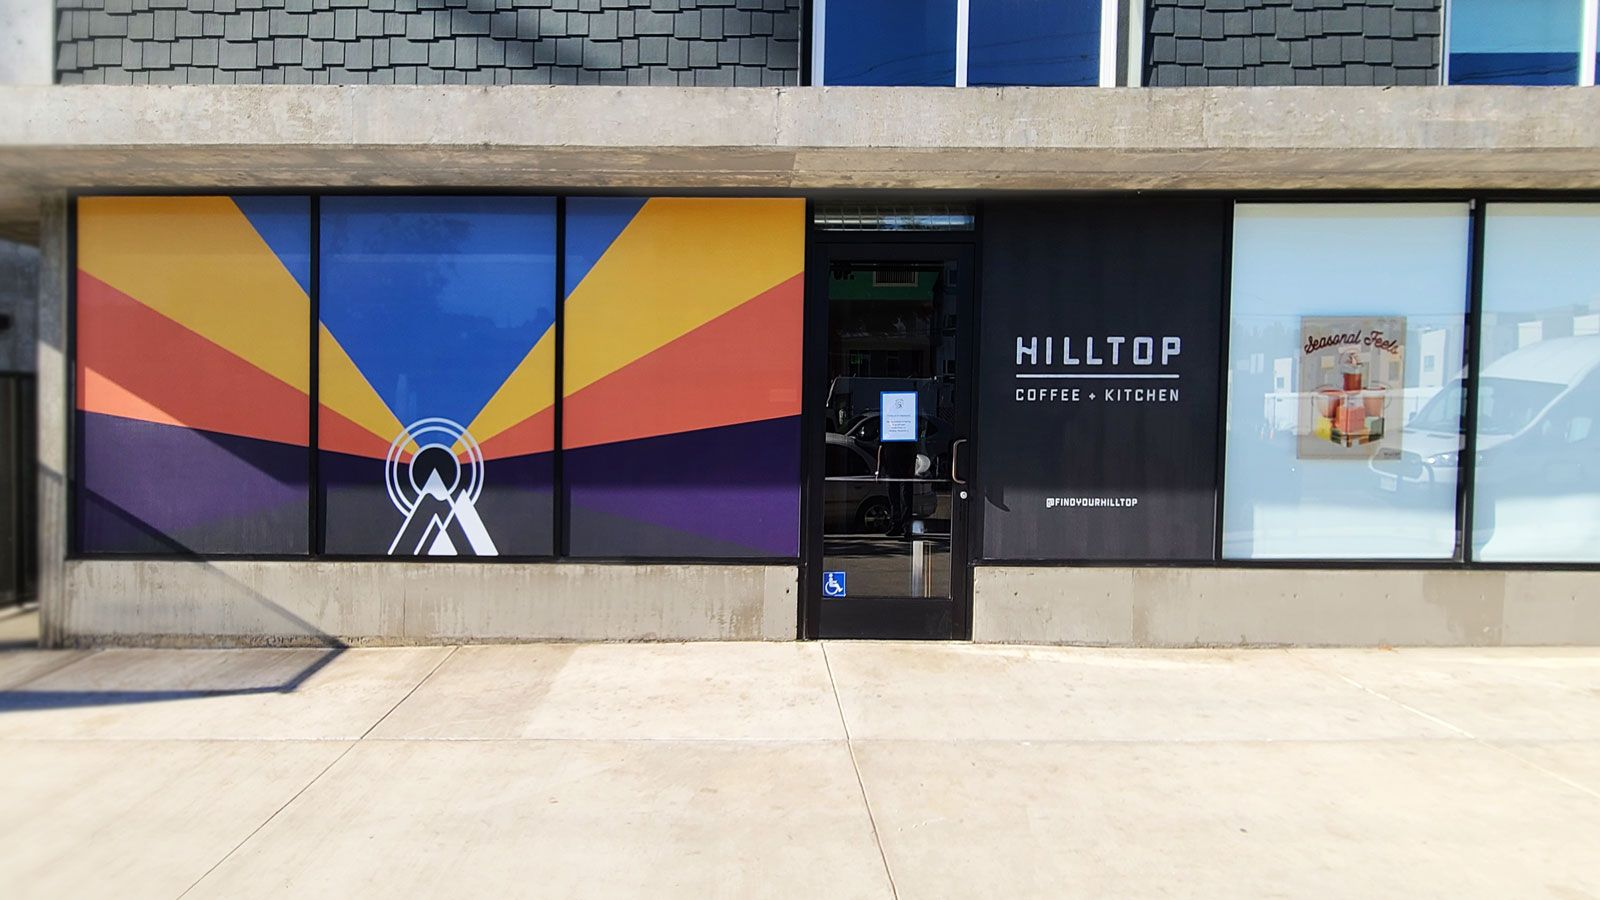 Hilltop window decals